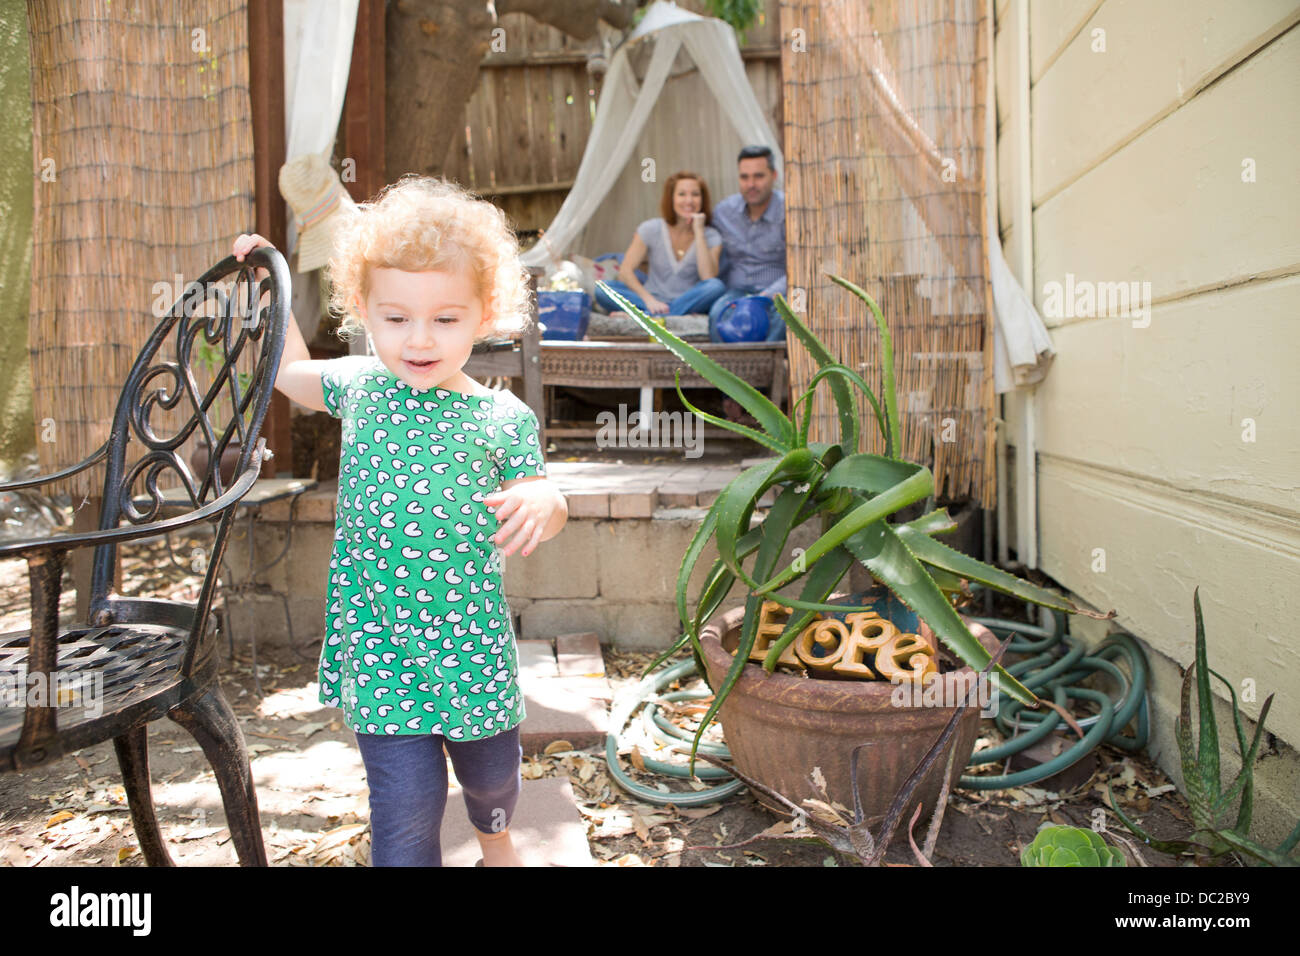 Child walking away from parents - Stock Image